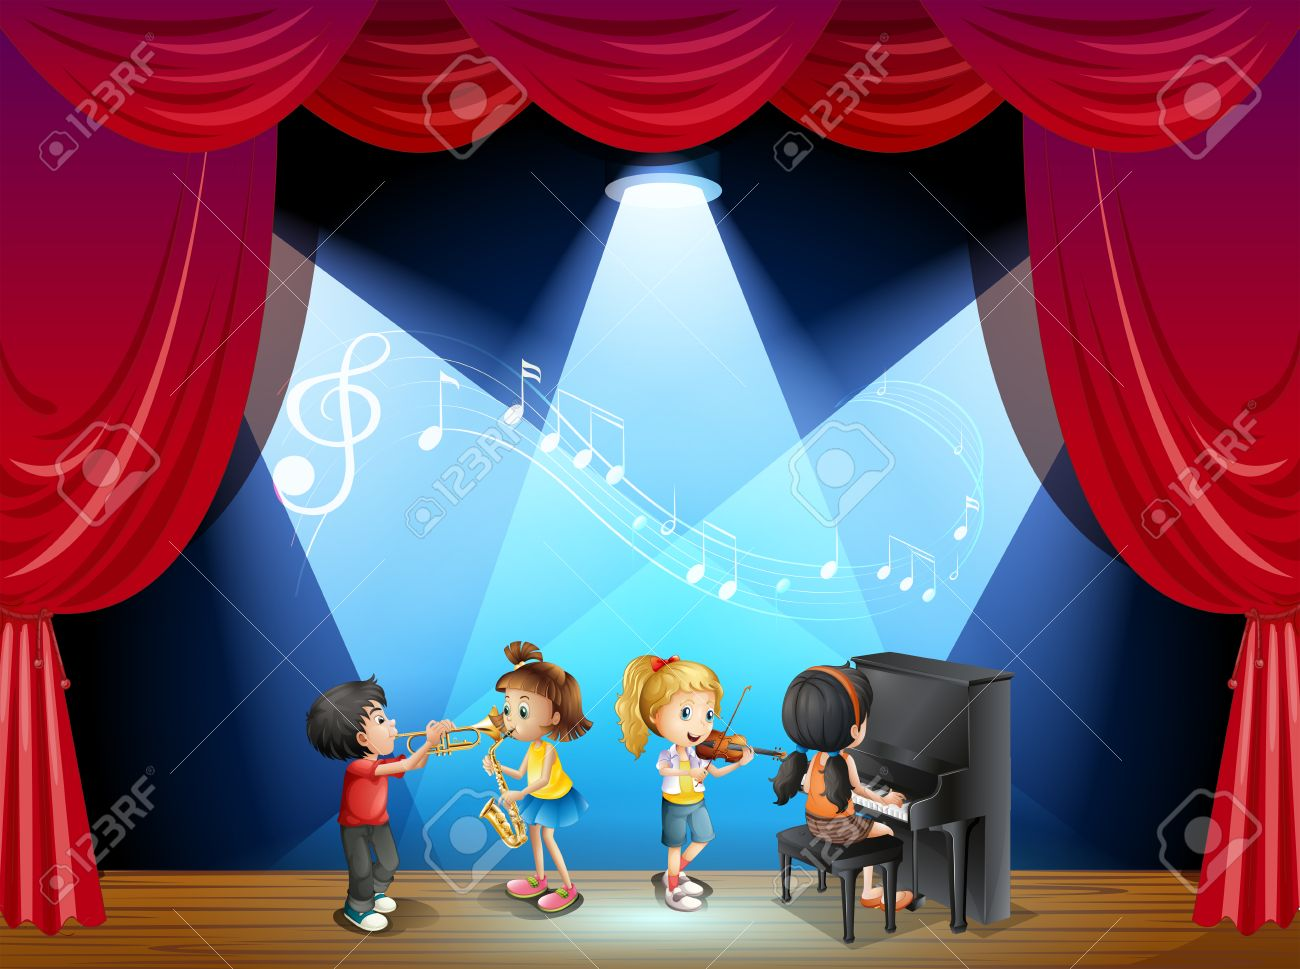 Children playing musical instrument on stage illustration stock vector 44844140